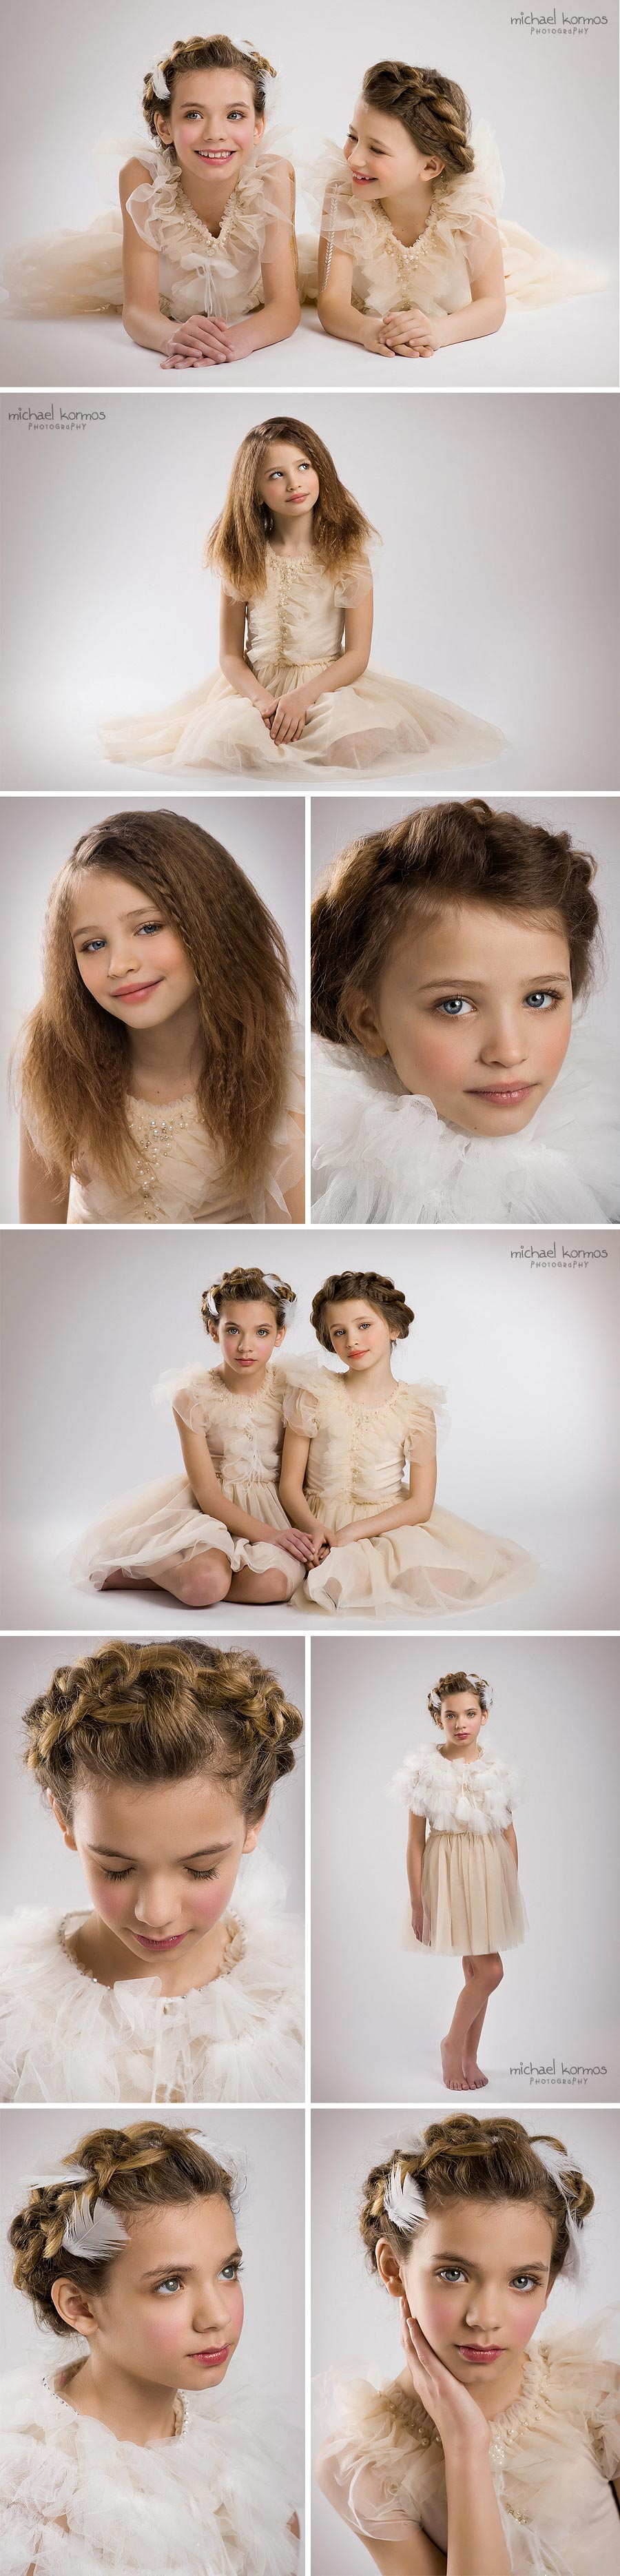 Commercial Child Fashion Photography NYC